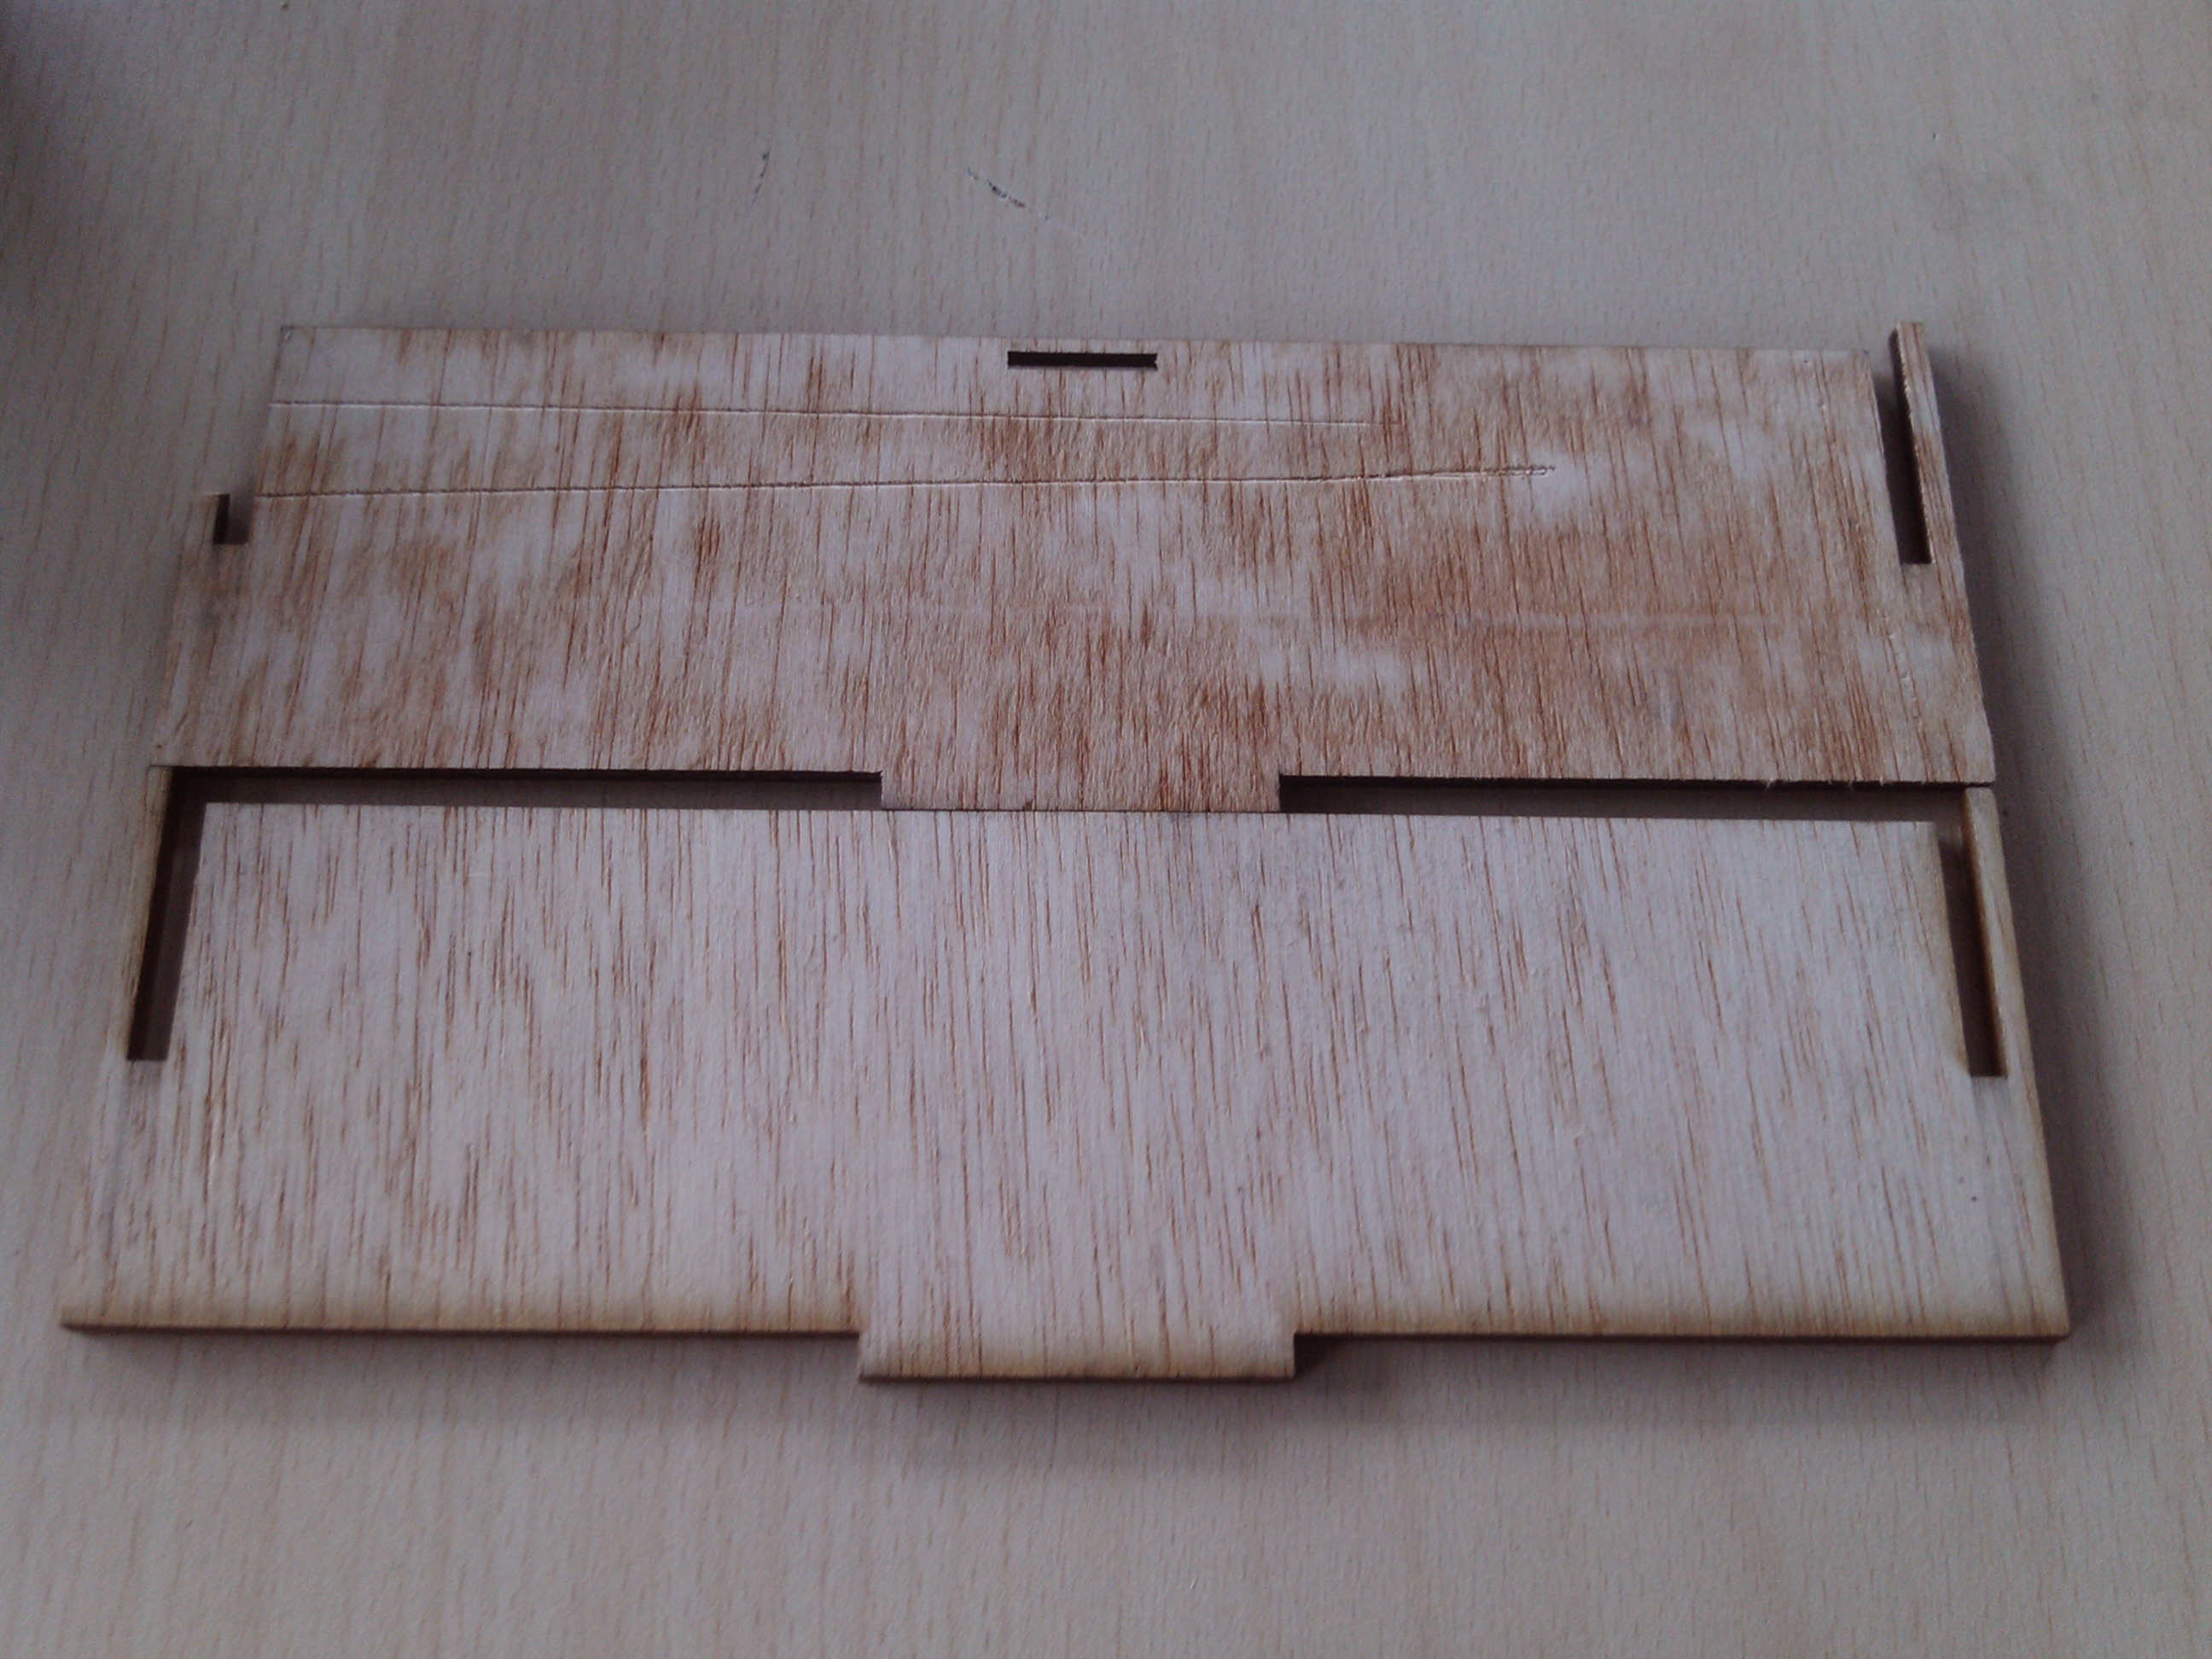 Picture of Wooden Box With a Flexible Top